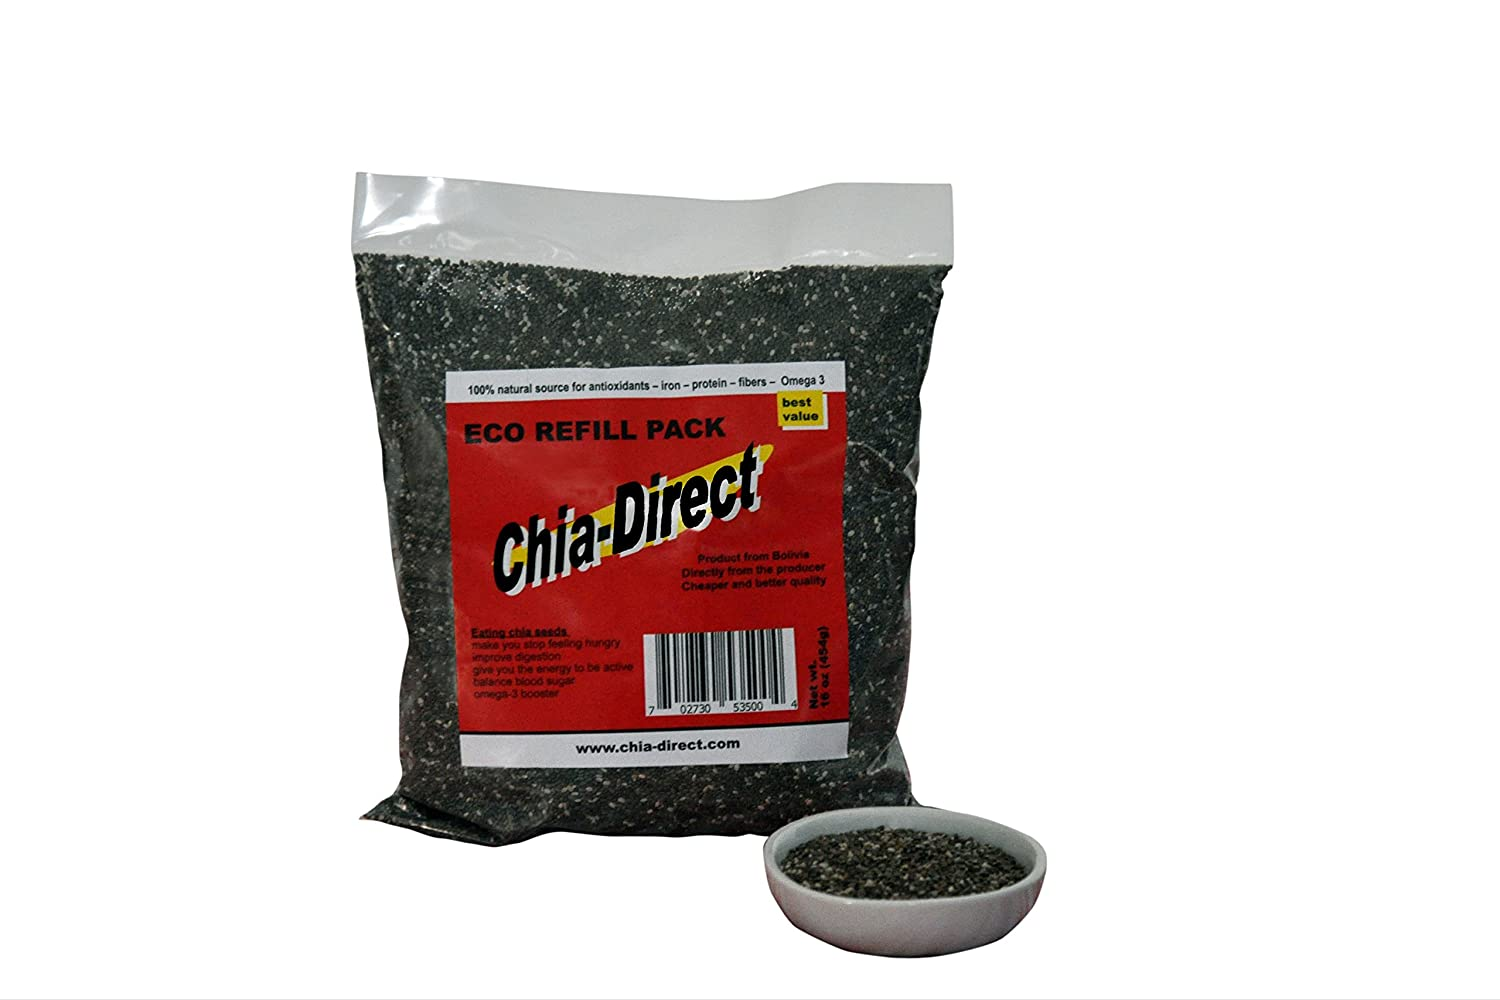 Amazon.com : semillas de chia negra 100% libre de pesticidas 16oz : Grocery & Gourmet Food